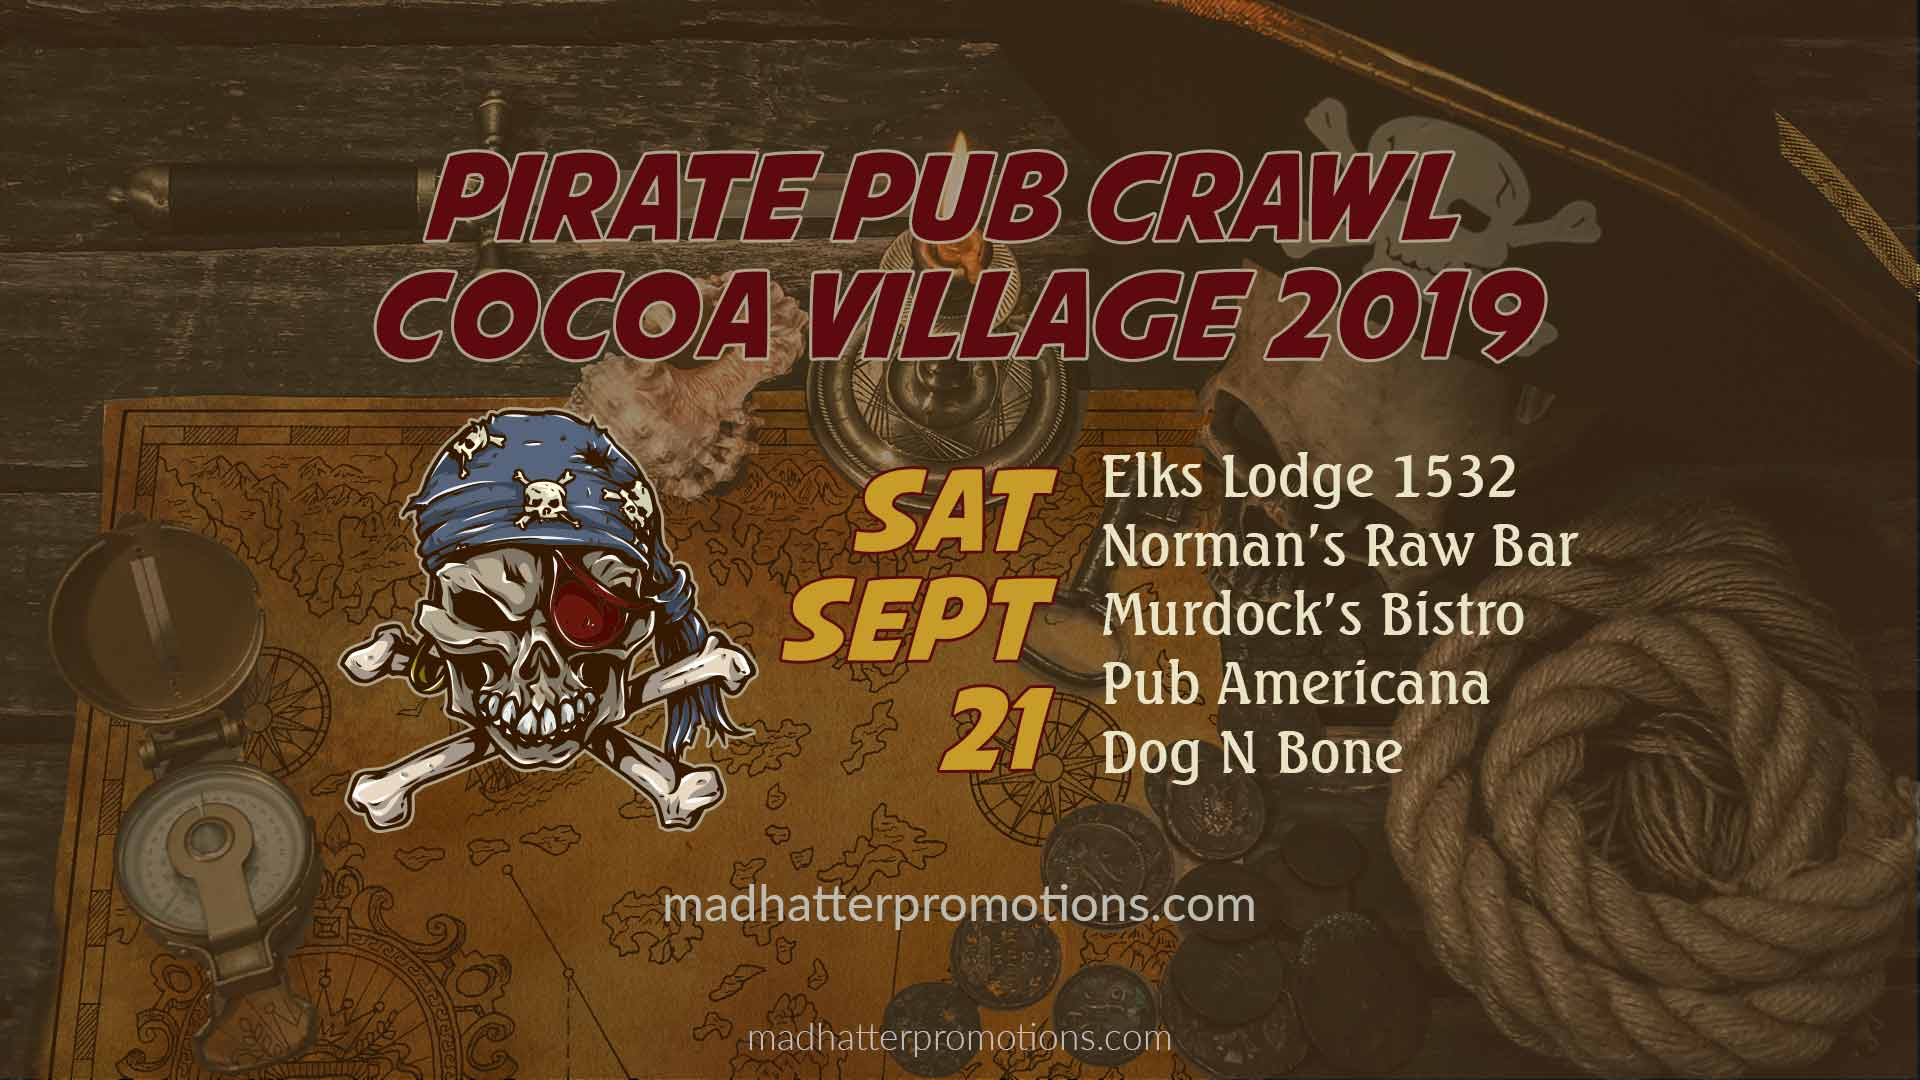 Pirate Pub Crawl Pirate Invasion Cocoa Village 2019, Saturday, September 21, beginning at 6 pm